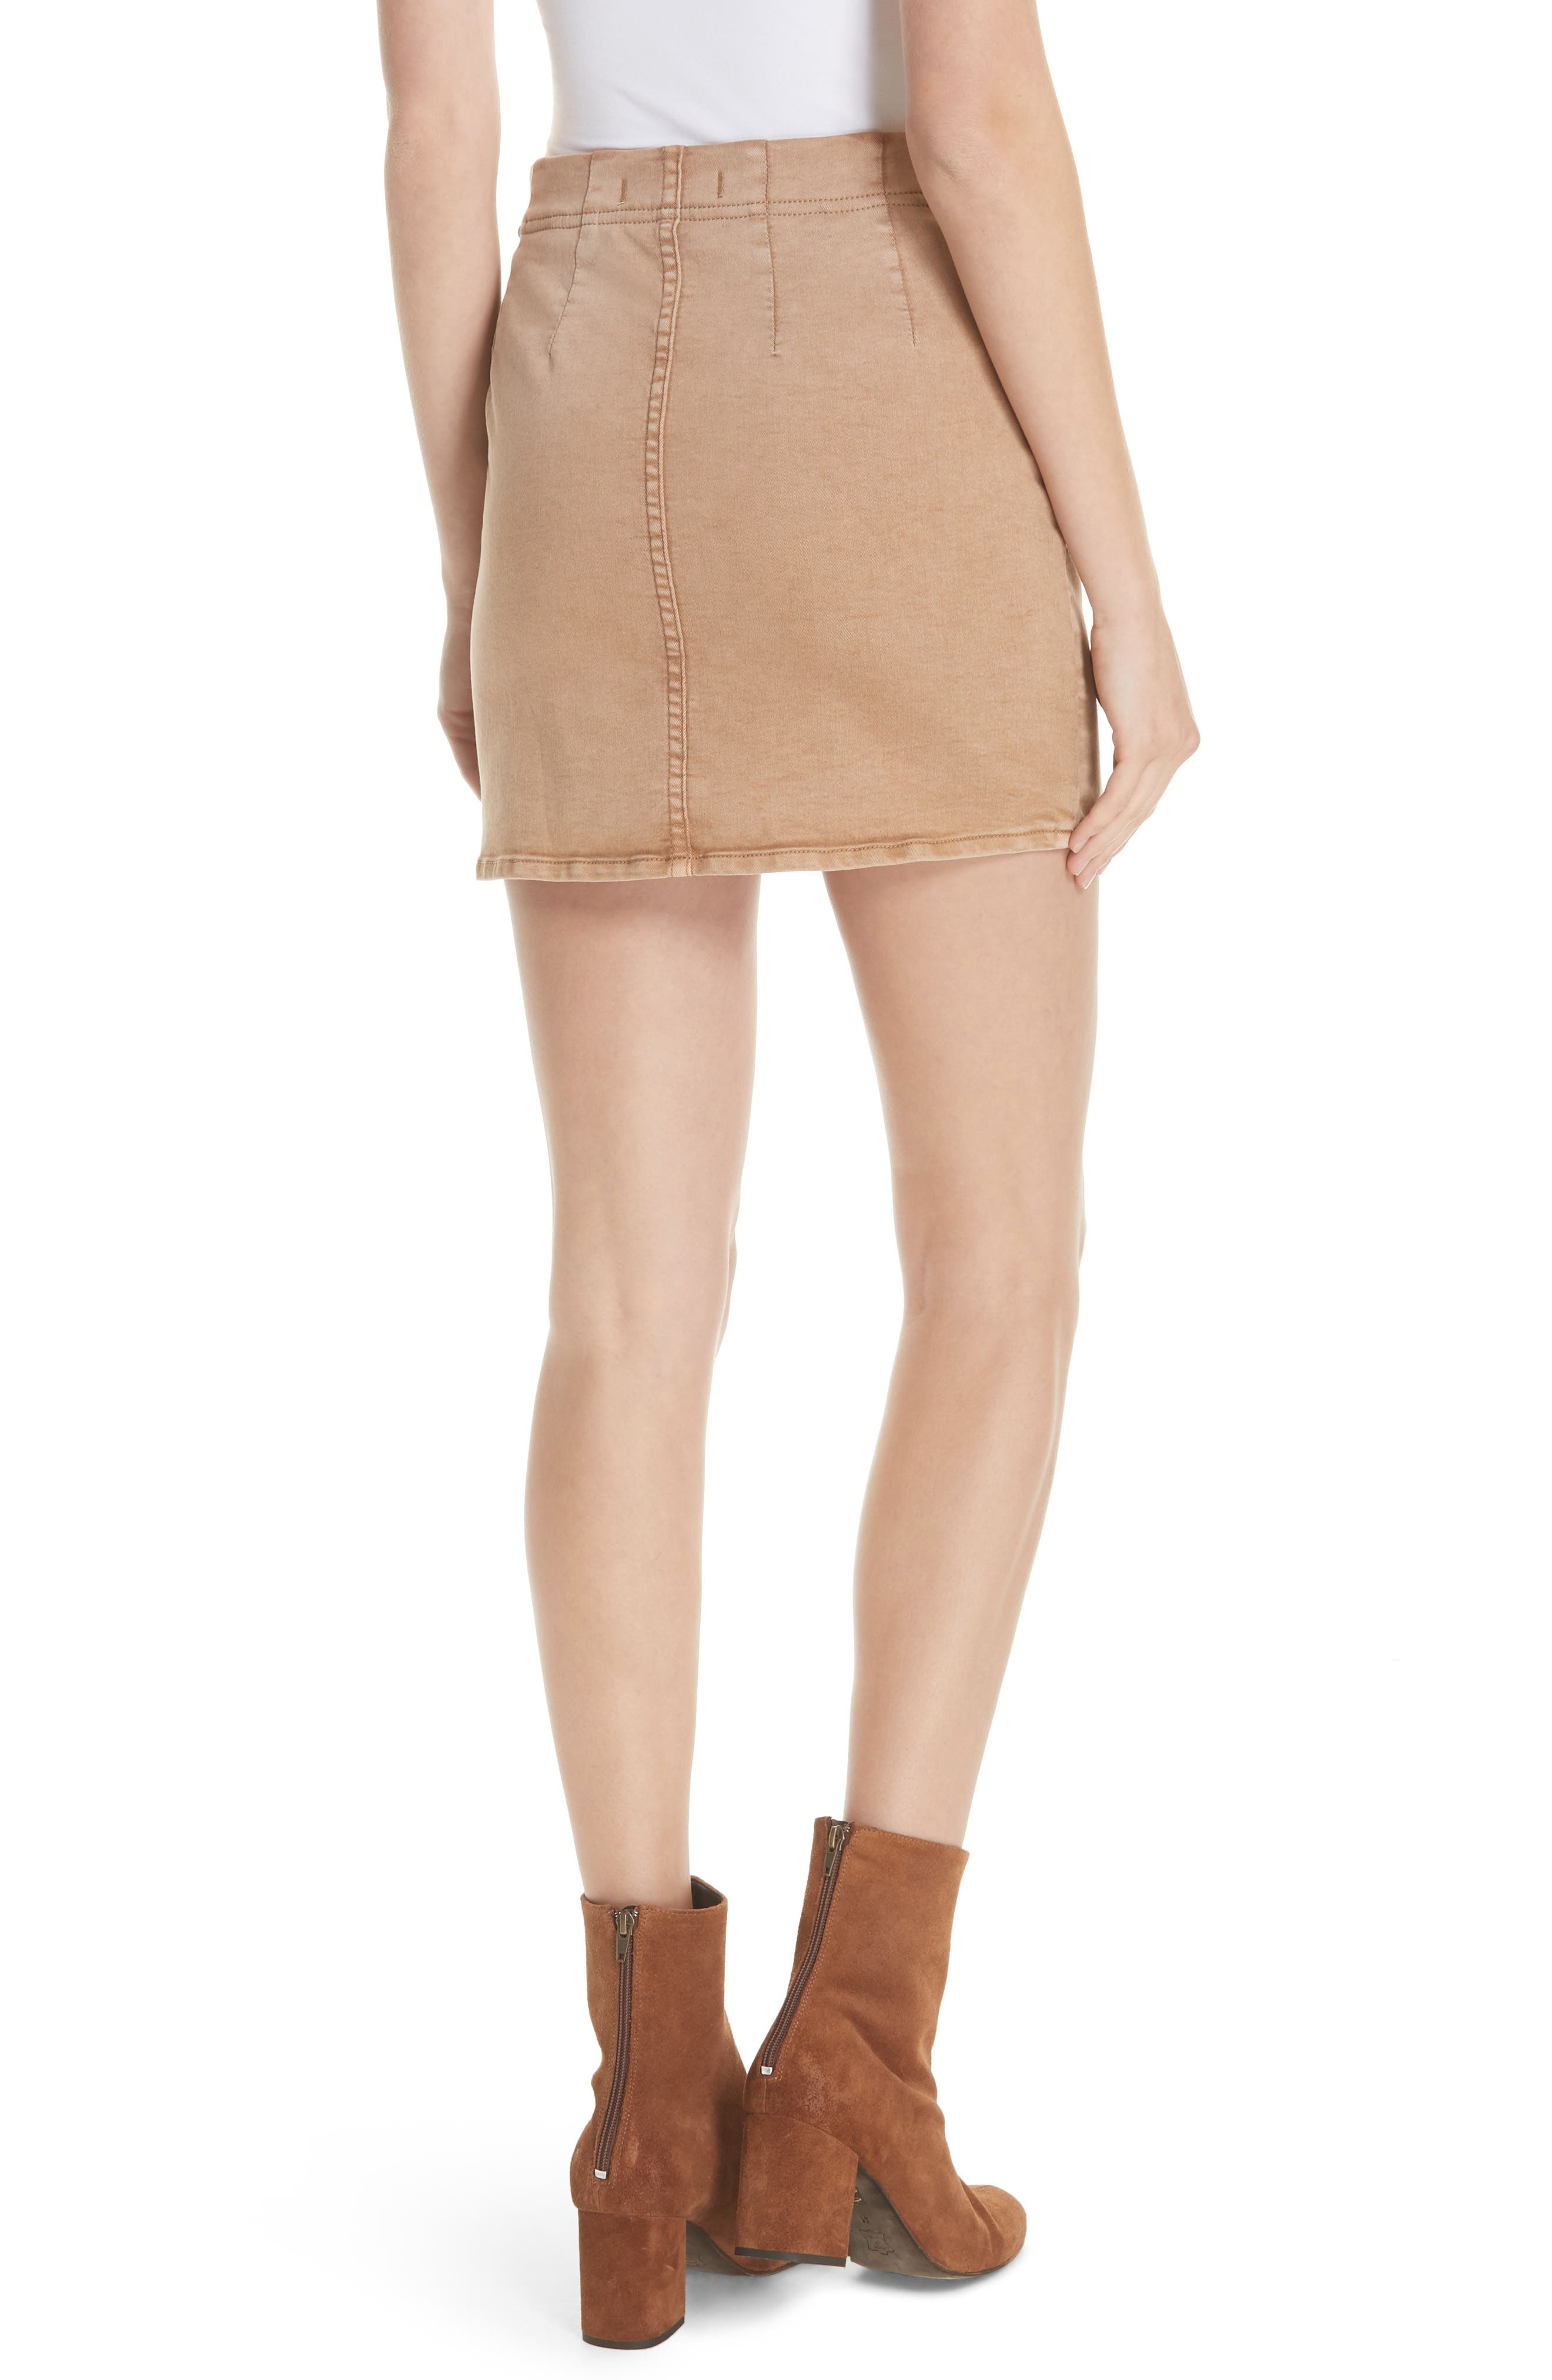 Femme Fatale Pull On Skirt,                             Alternate thumbnail 4, color,                             Khaki